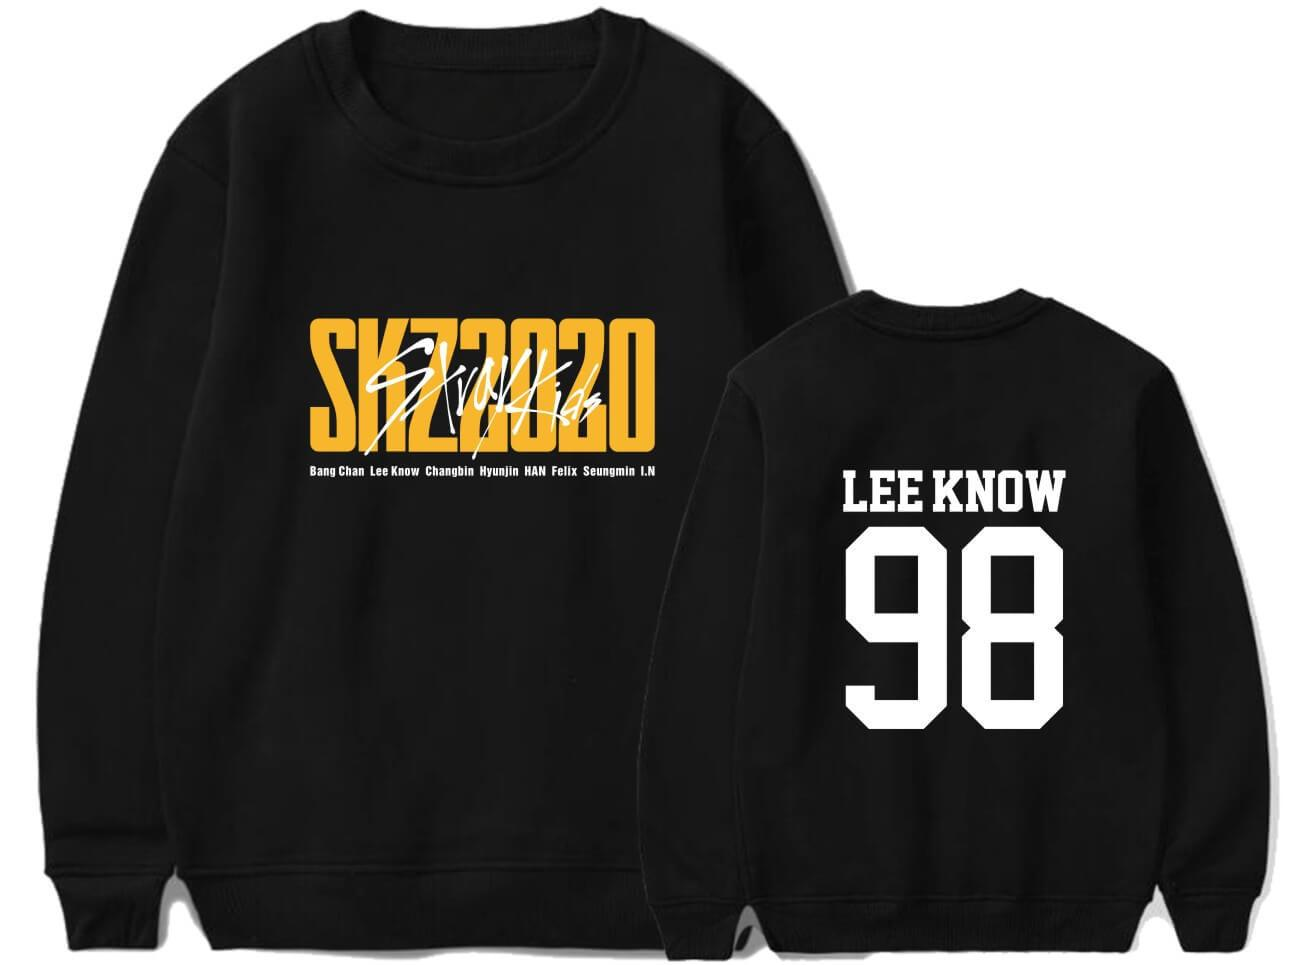 Stray Kids SKZ2020 Album Printed Cotton Casual Sweatshirt